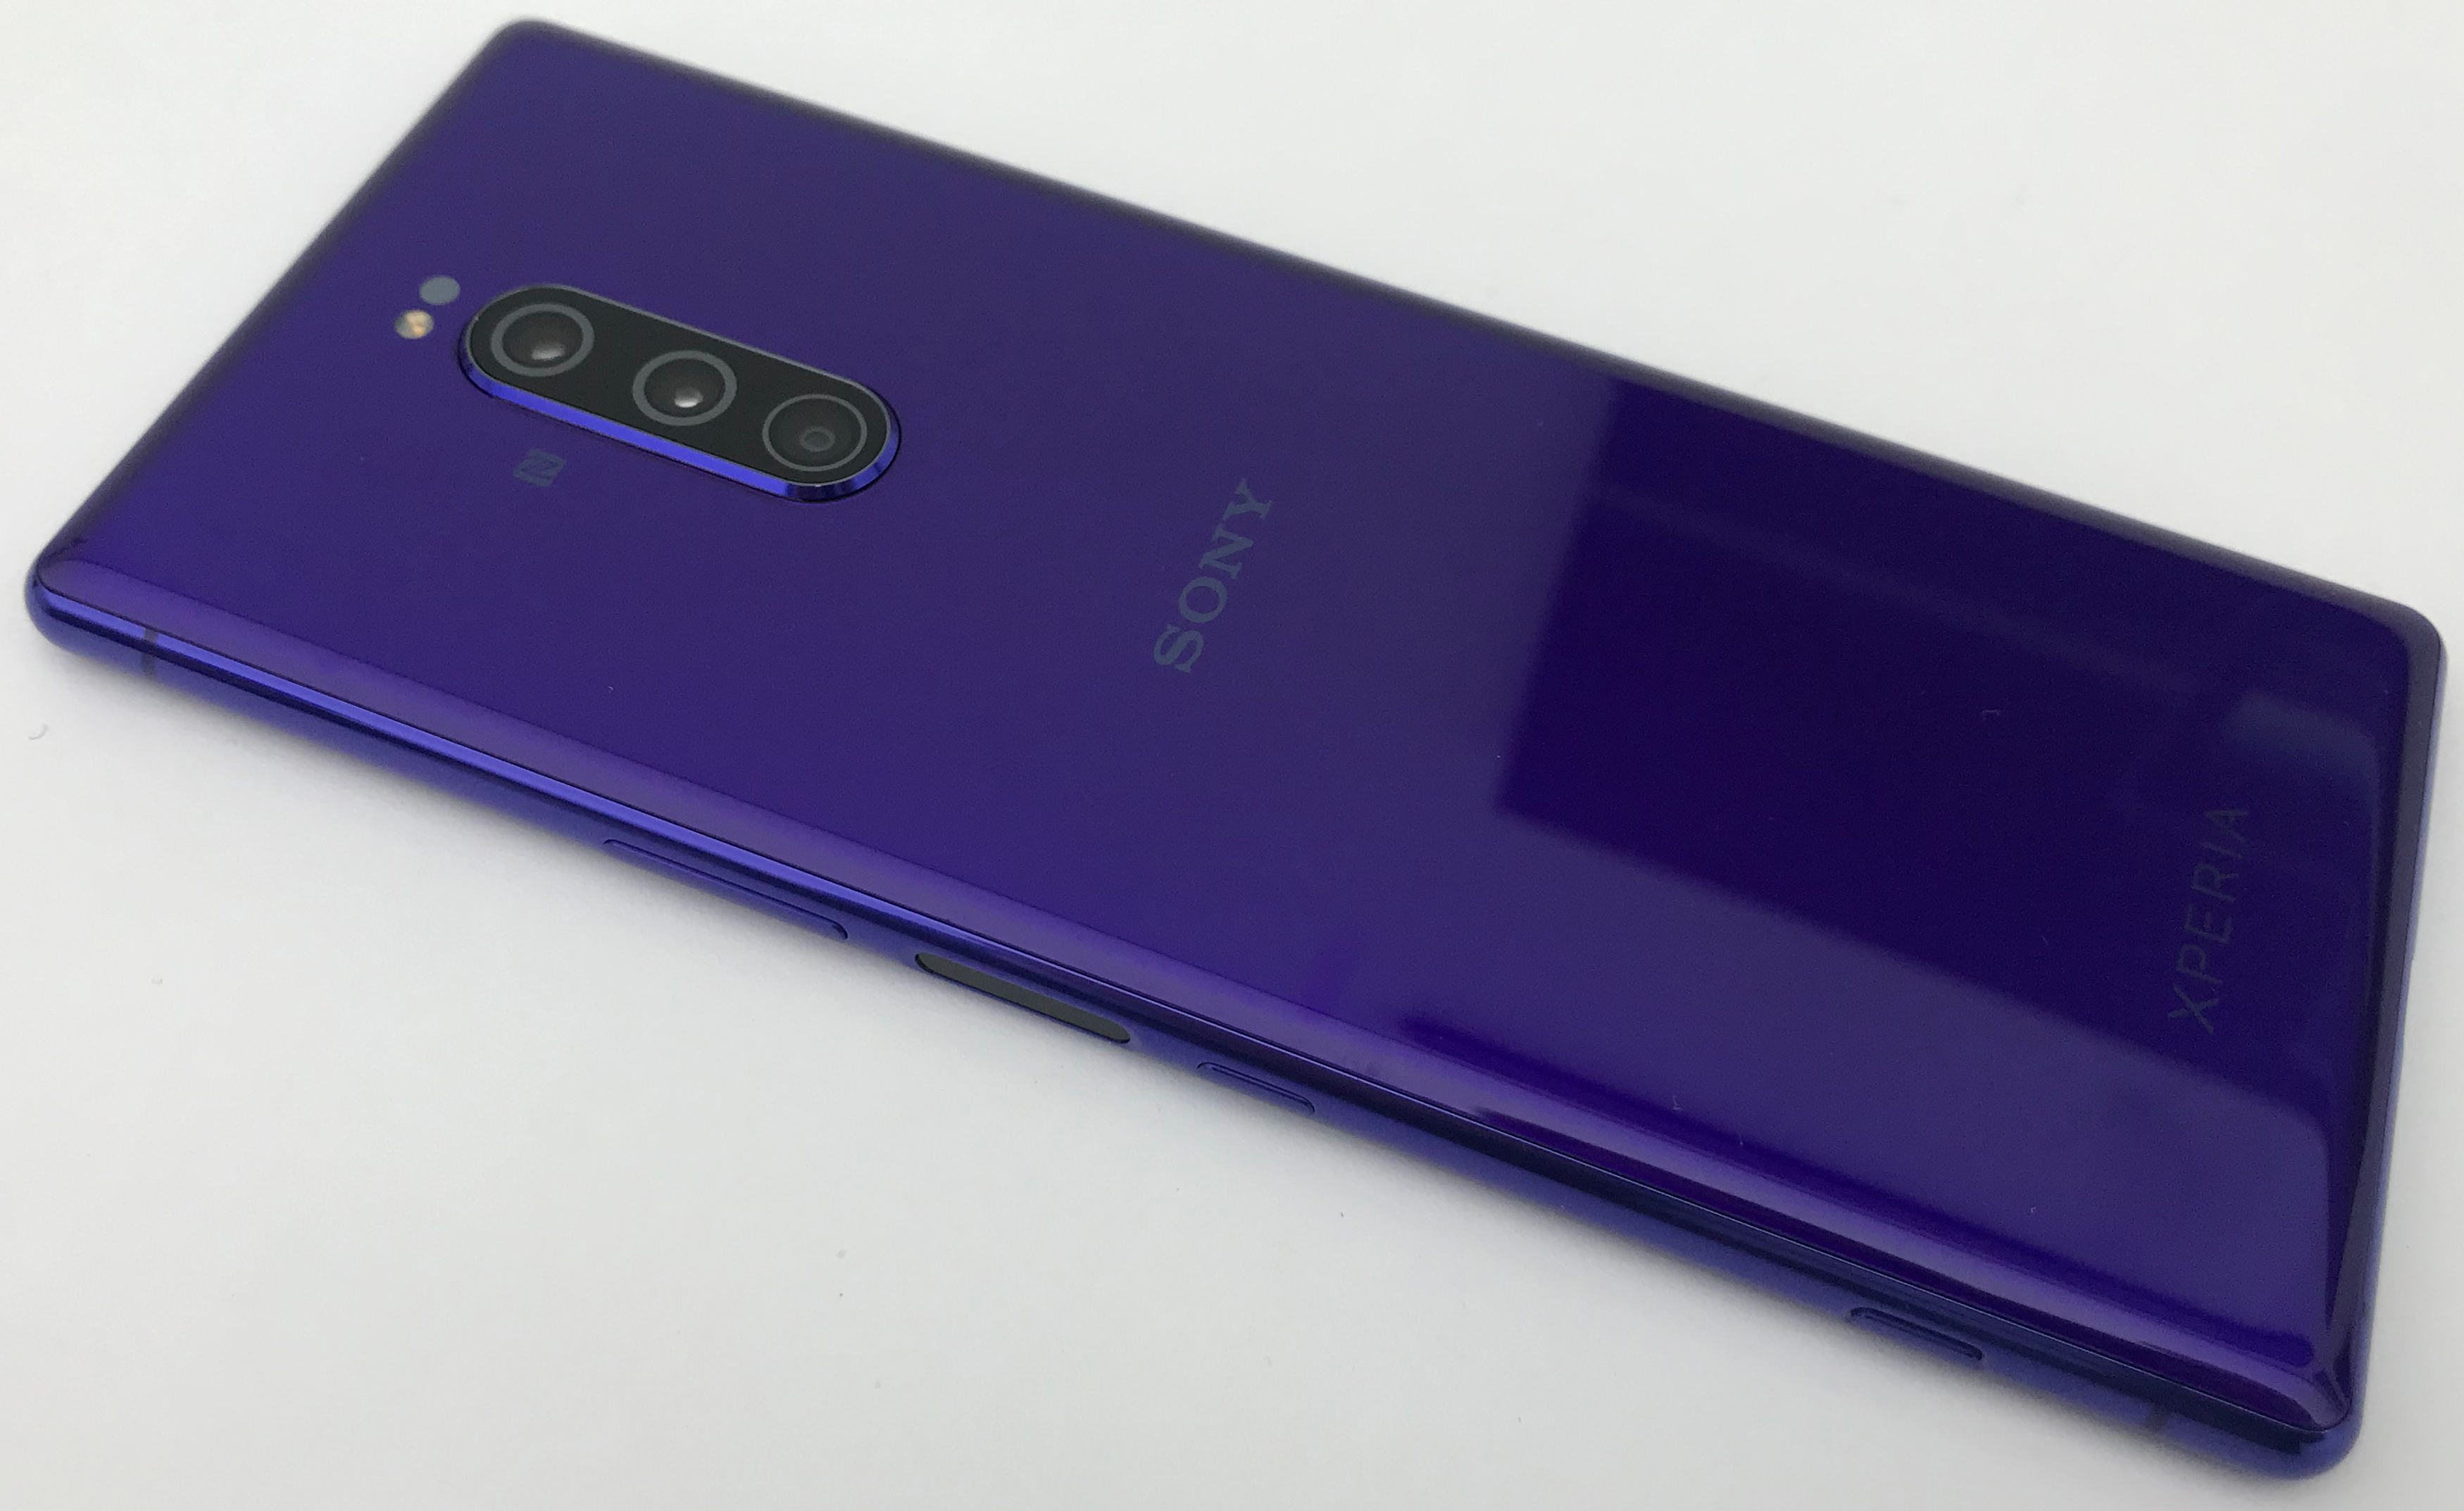 Sony's Flagship Xperia 1 21:9 Smartphone Gets a Launch Date